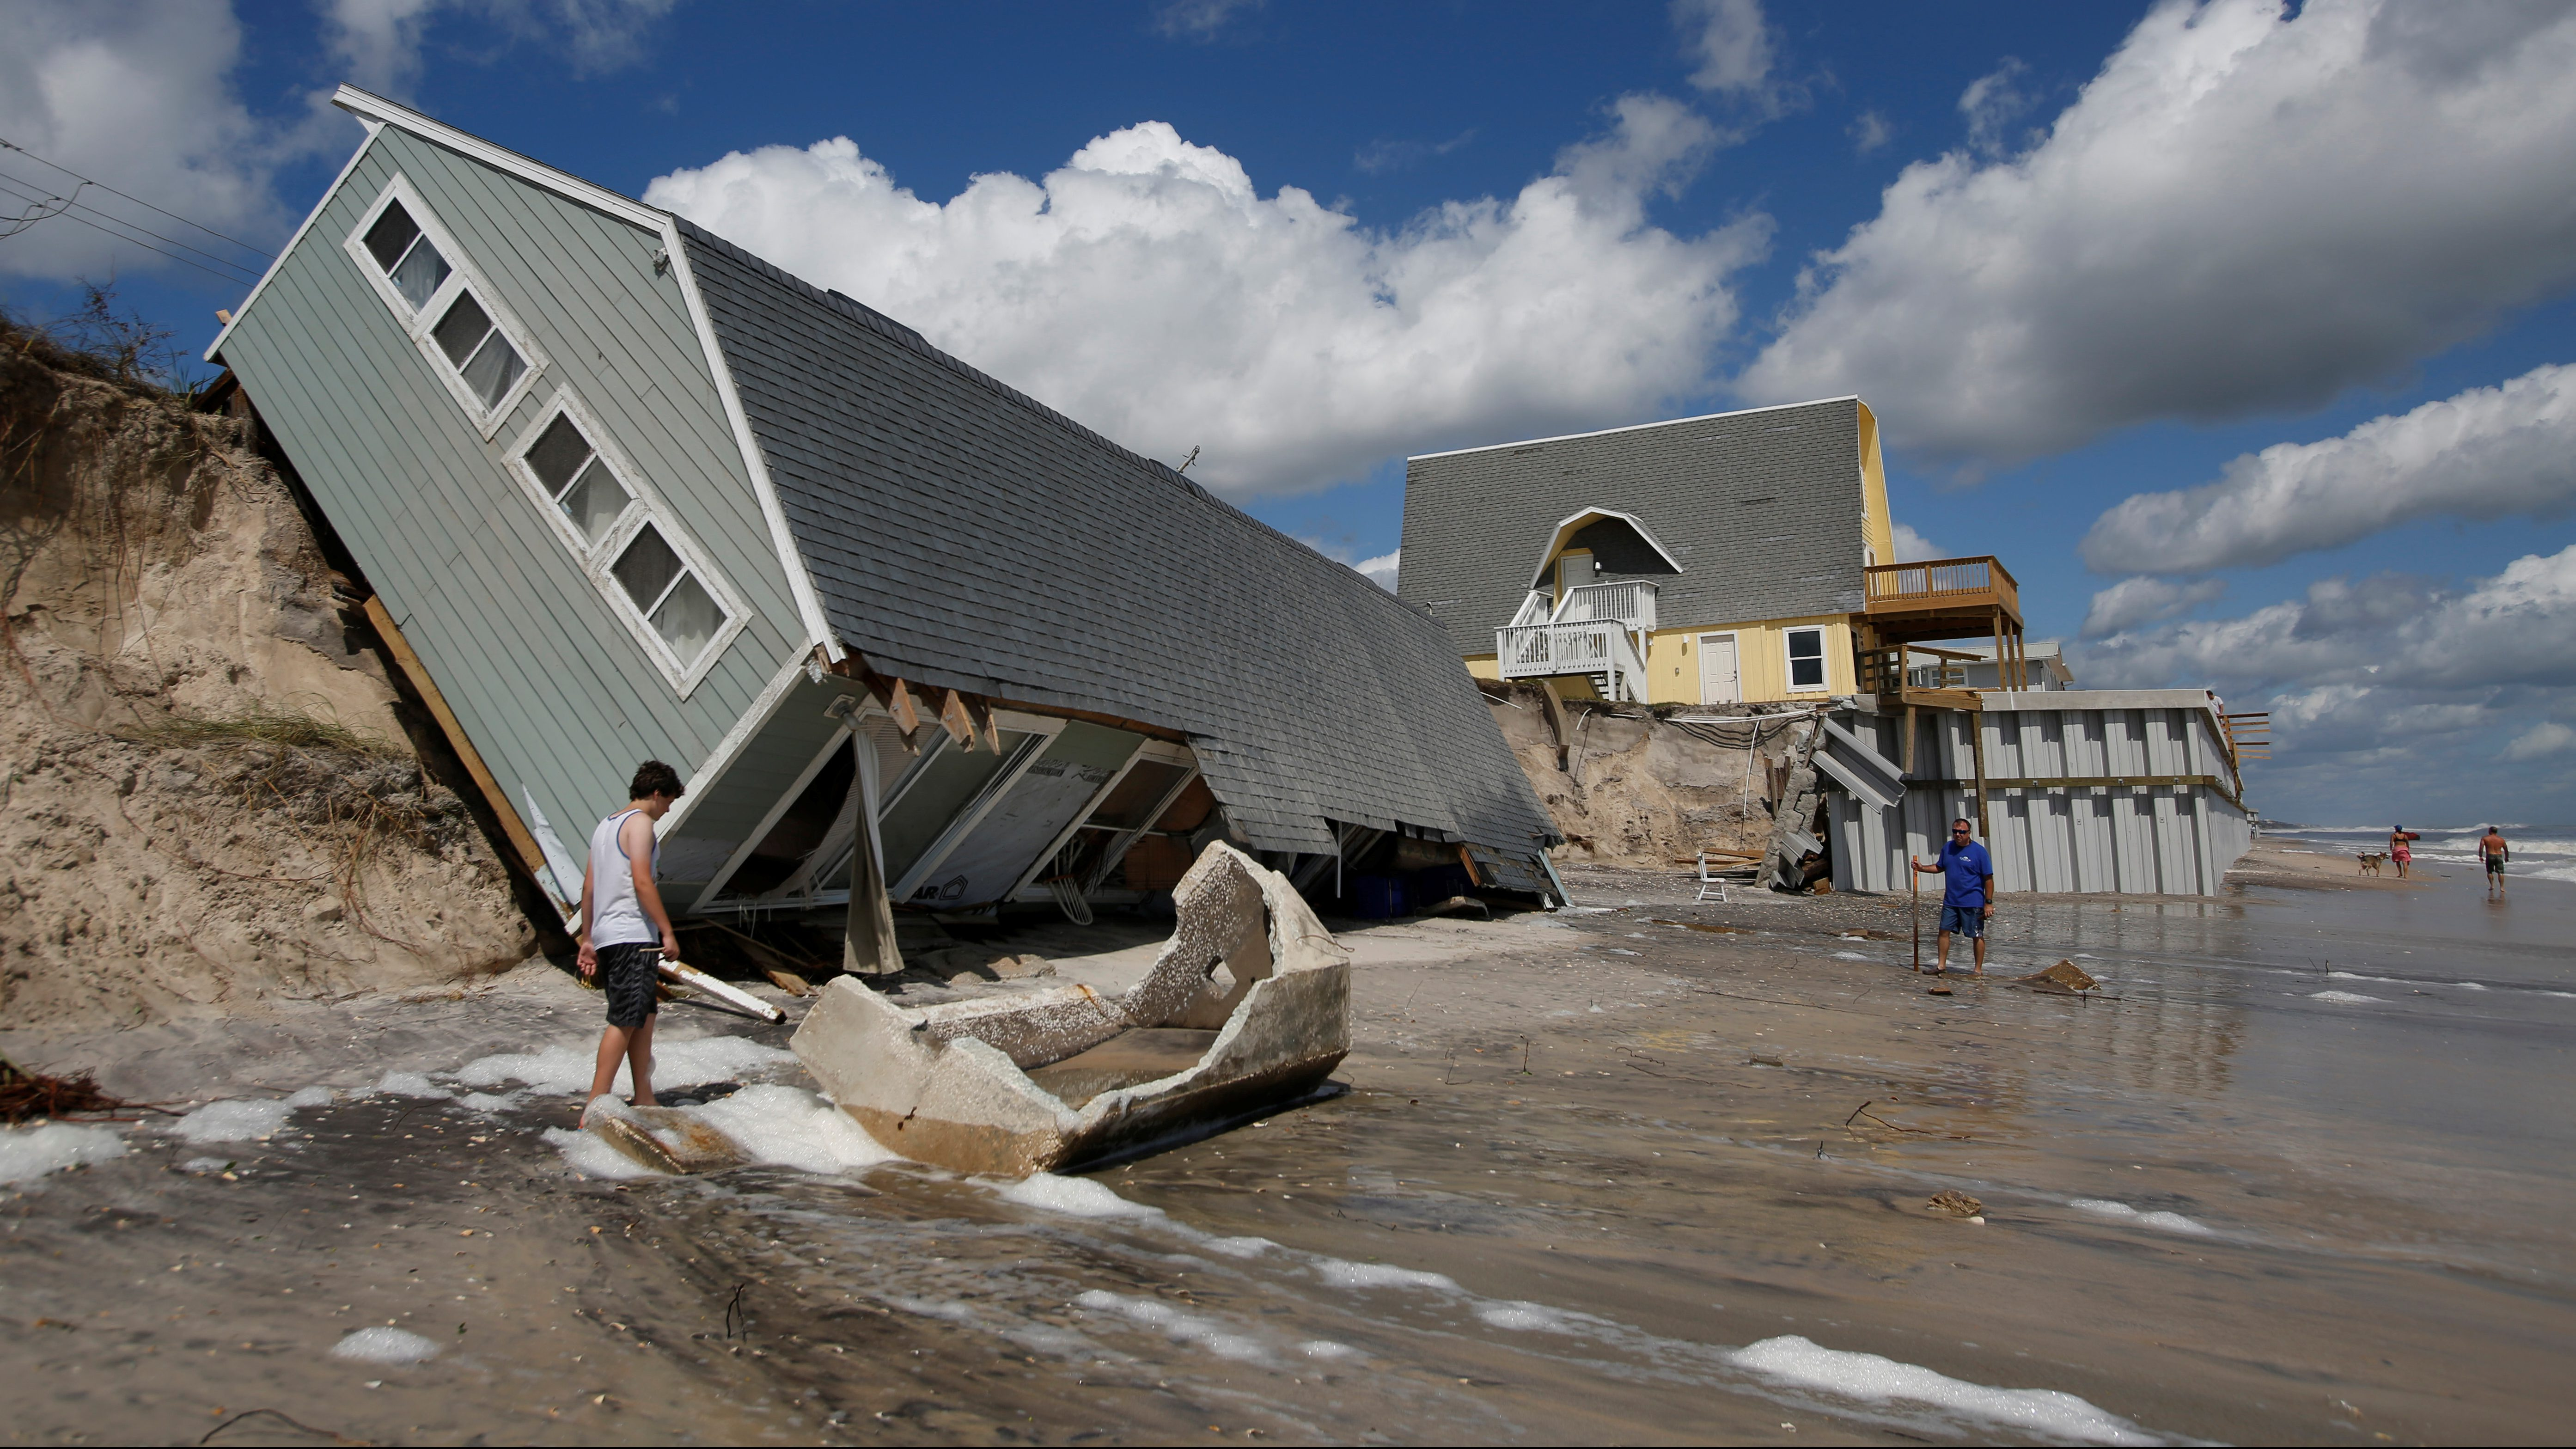 Local residents look at a collapsed coastal house after Hurricane Irma passed the area in Vilano Beach, Florida, U.S., September 12, 2017. REUTERS/Chris Wattie - RC135B0CEC80